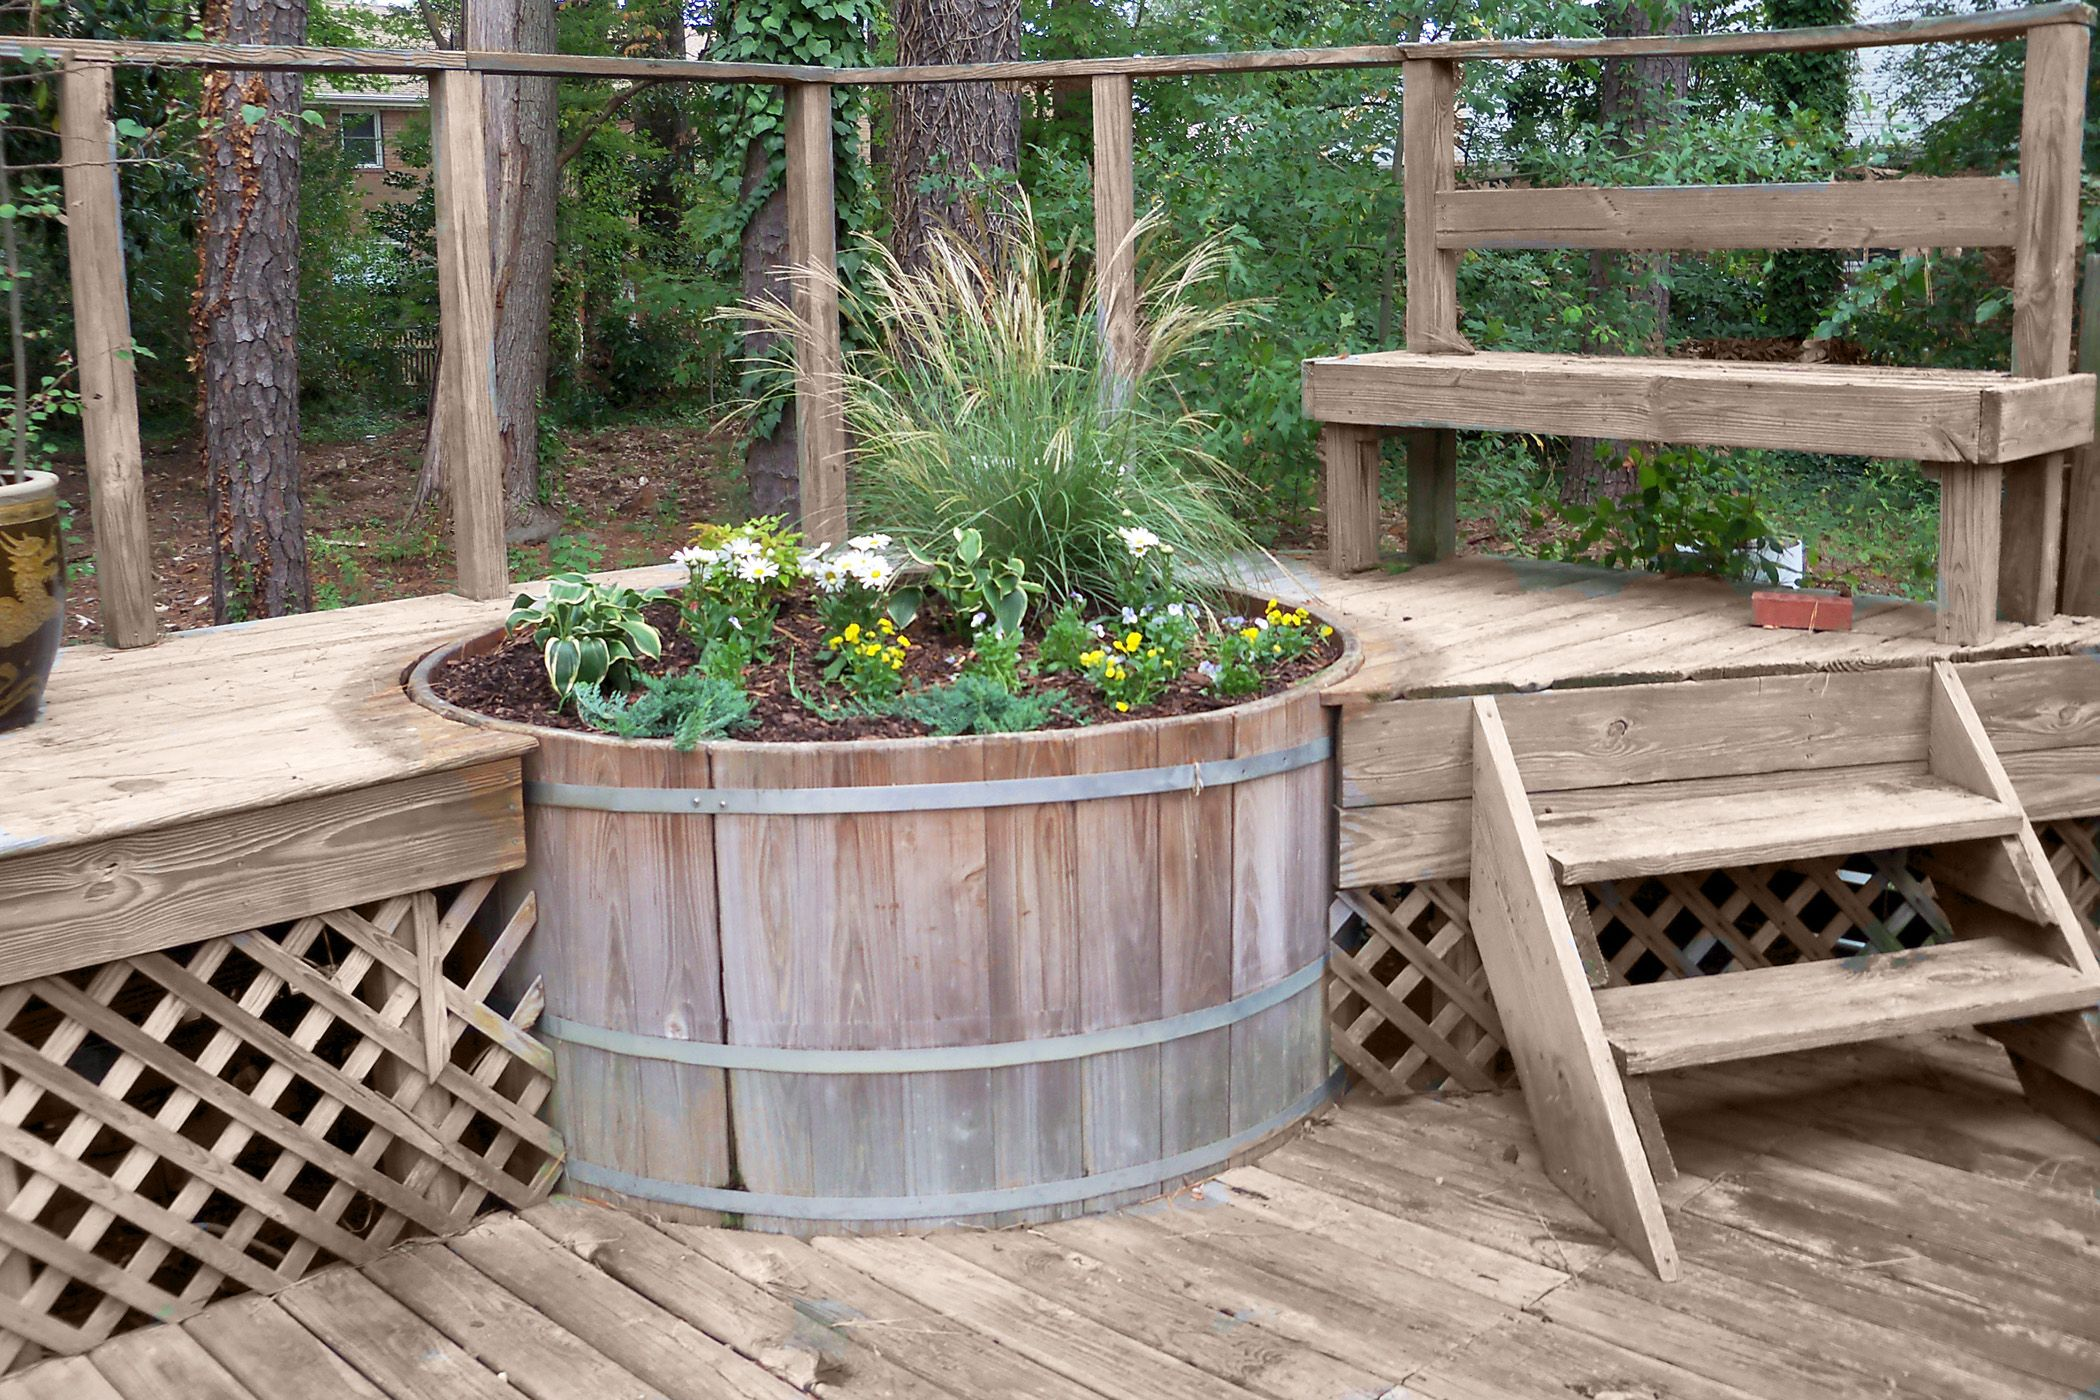 Turn An Old Hot Tub Into An Over Sized Deck Planter With Images